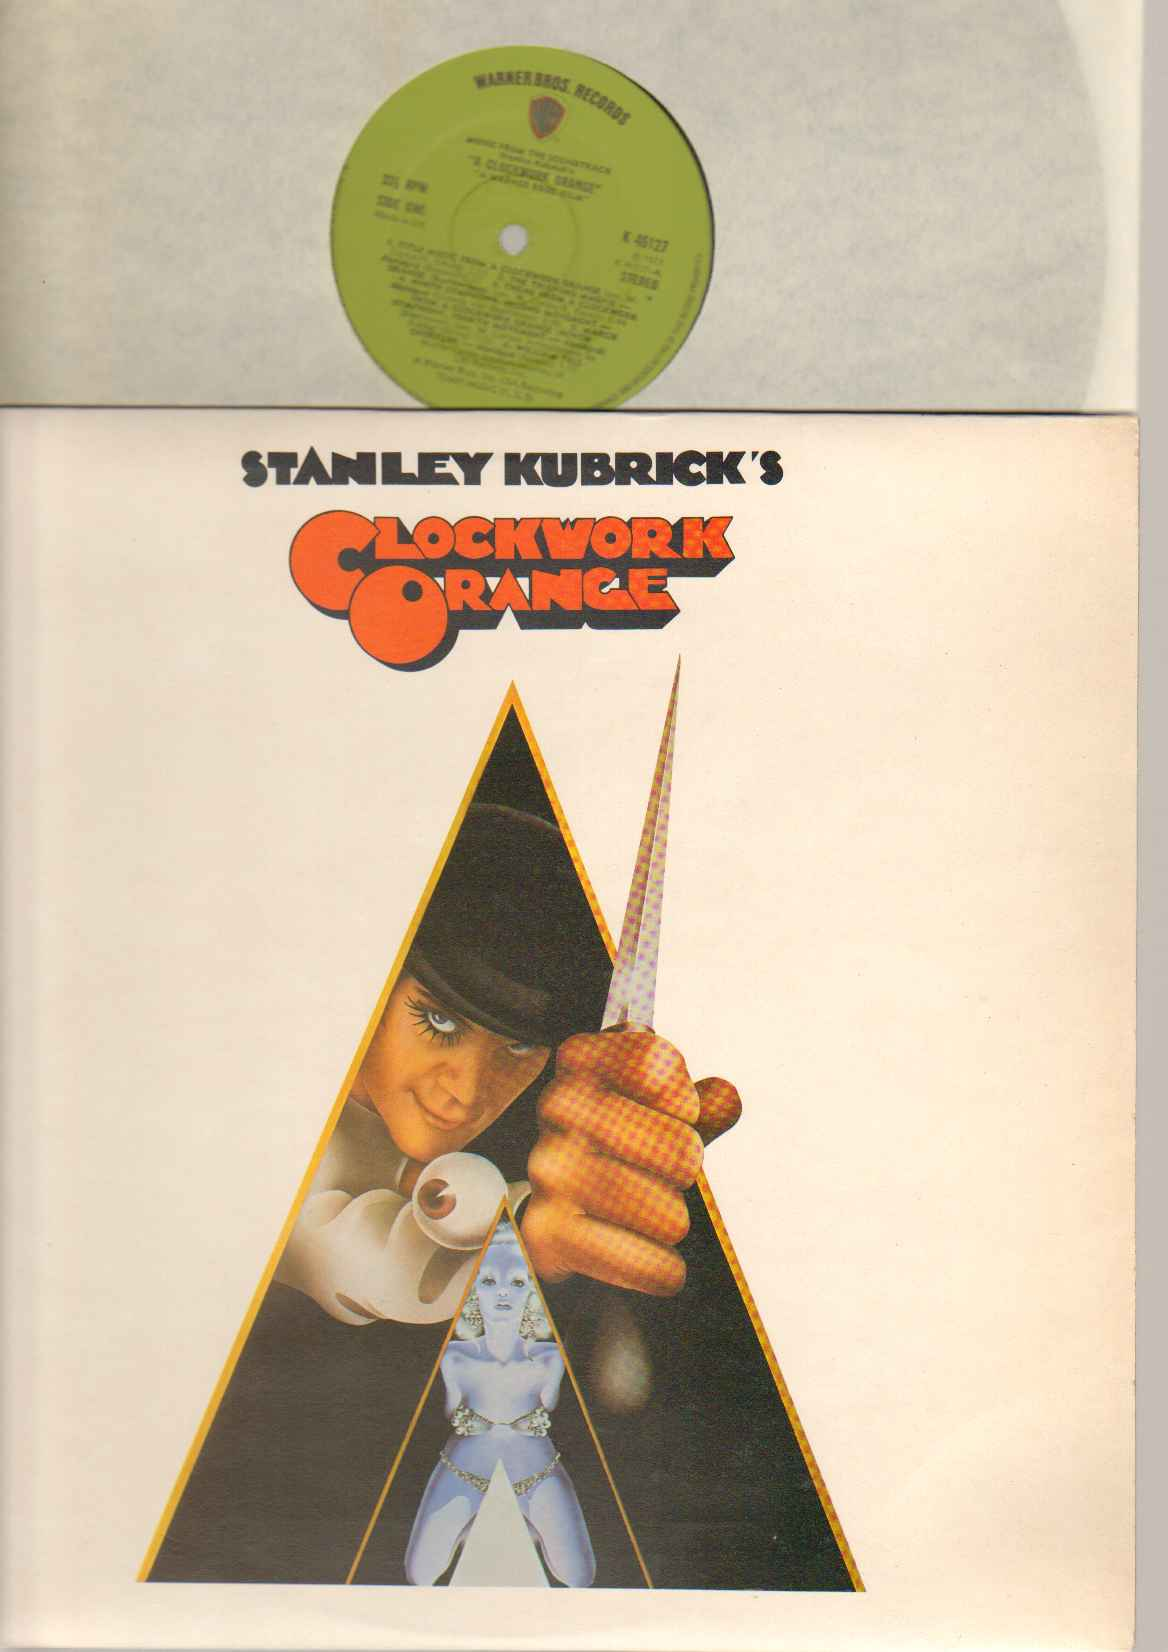 CLOCKWORK ORANGE - Clockwork Orange Soundtrack 1970's Original Green Warner Brothers Labels - Clean And In Excellent Co - LP